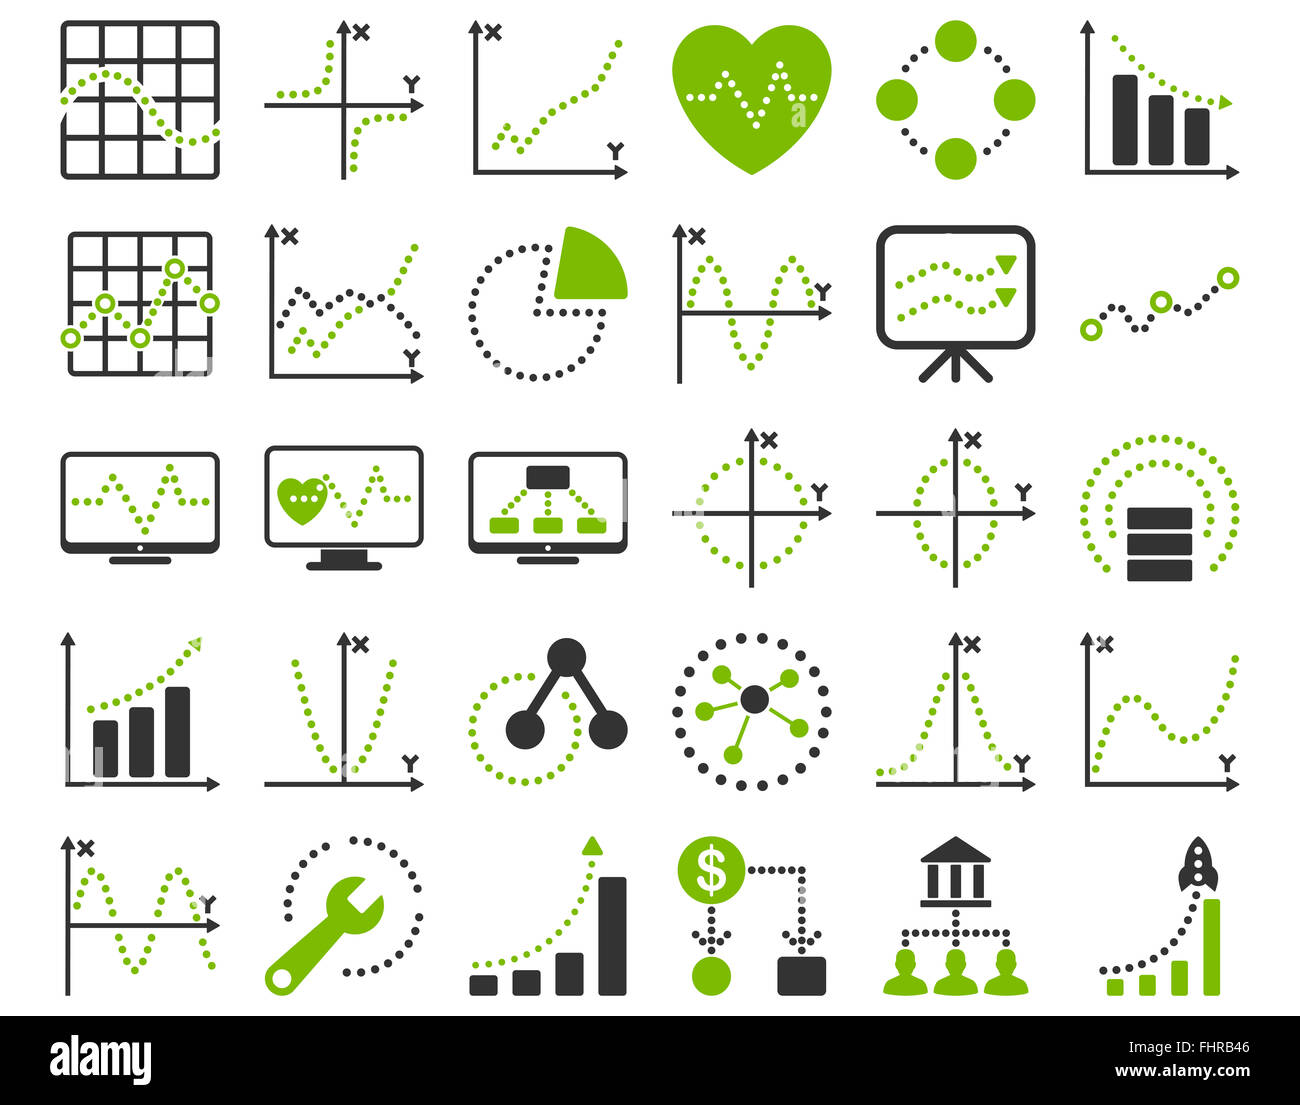 Dotted charts icons stock photo 97014630 alamy dotted charts icons geenschuldenfo Gallery